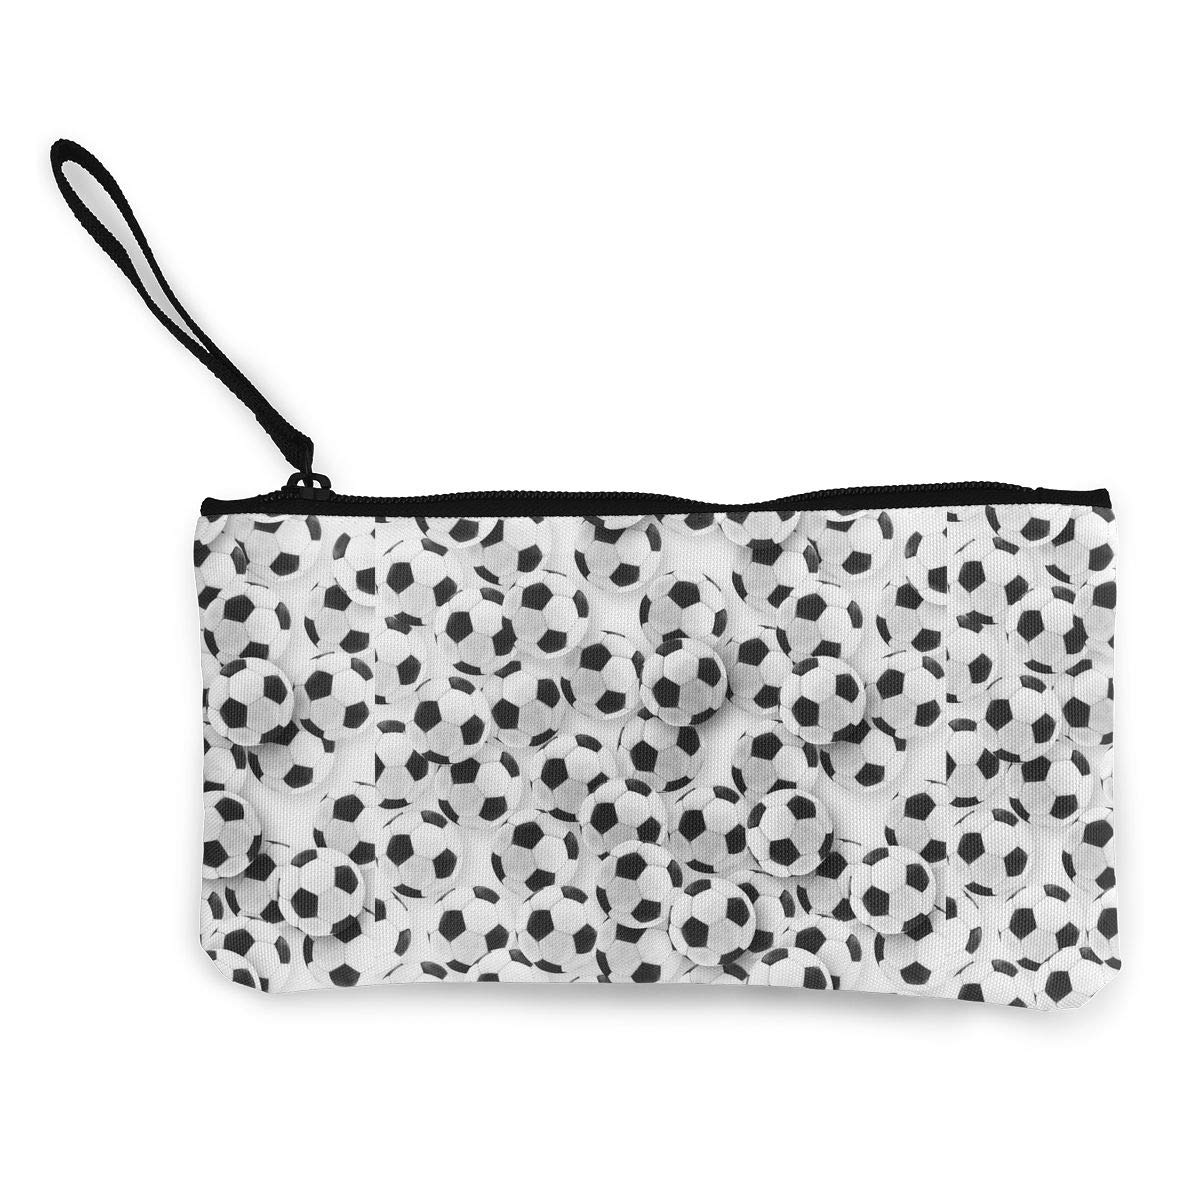 Zipper Small Purse Wallets Girls Canvas Coin Case Cellphone Clutch Purse With Wrist Strap Many Soccer Balls Pattern